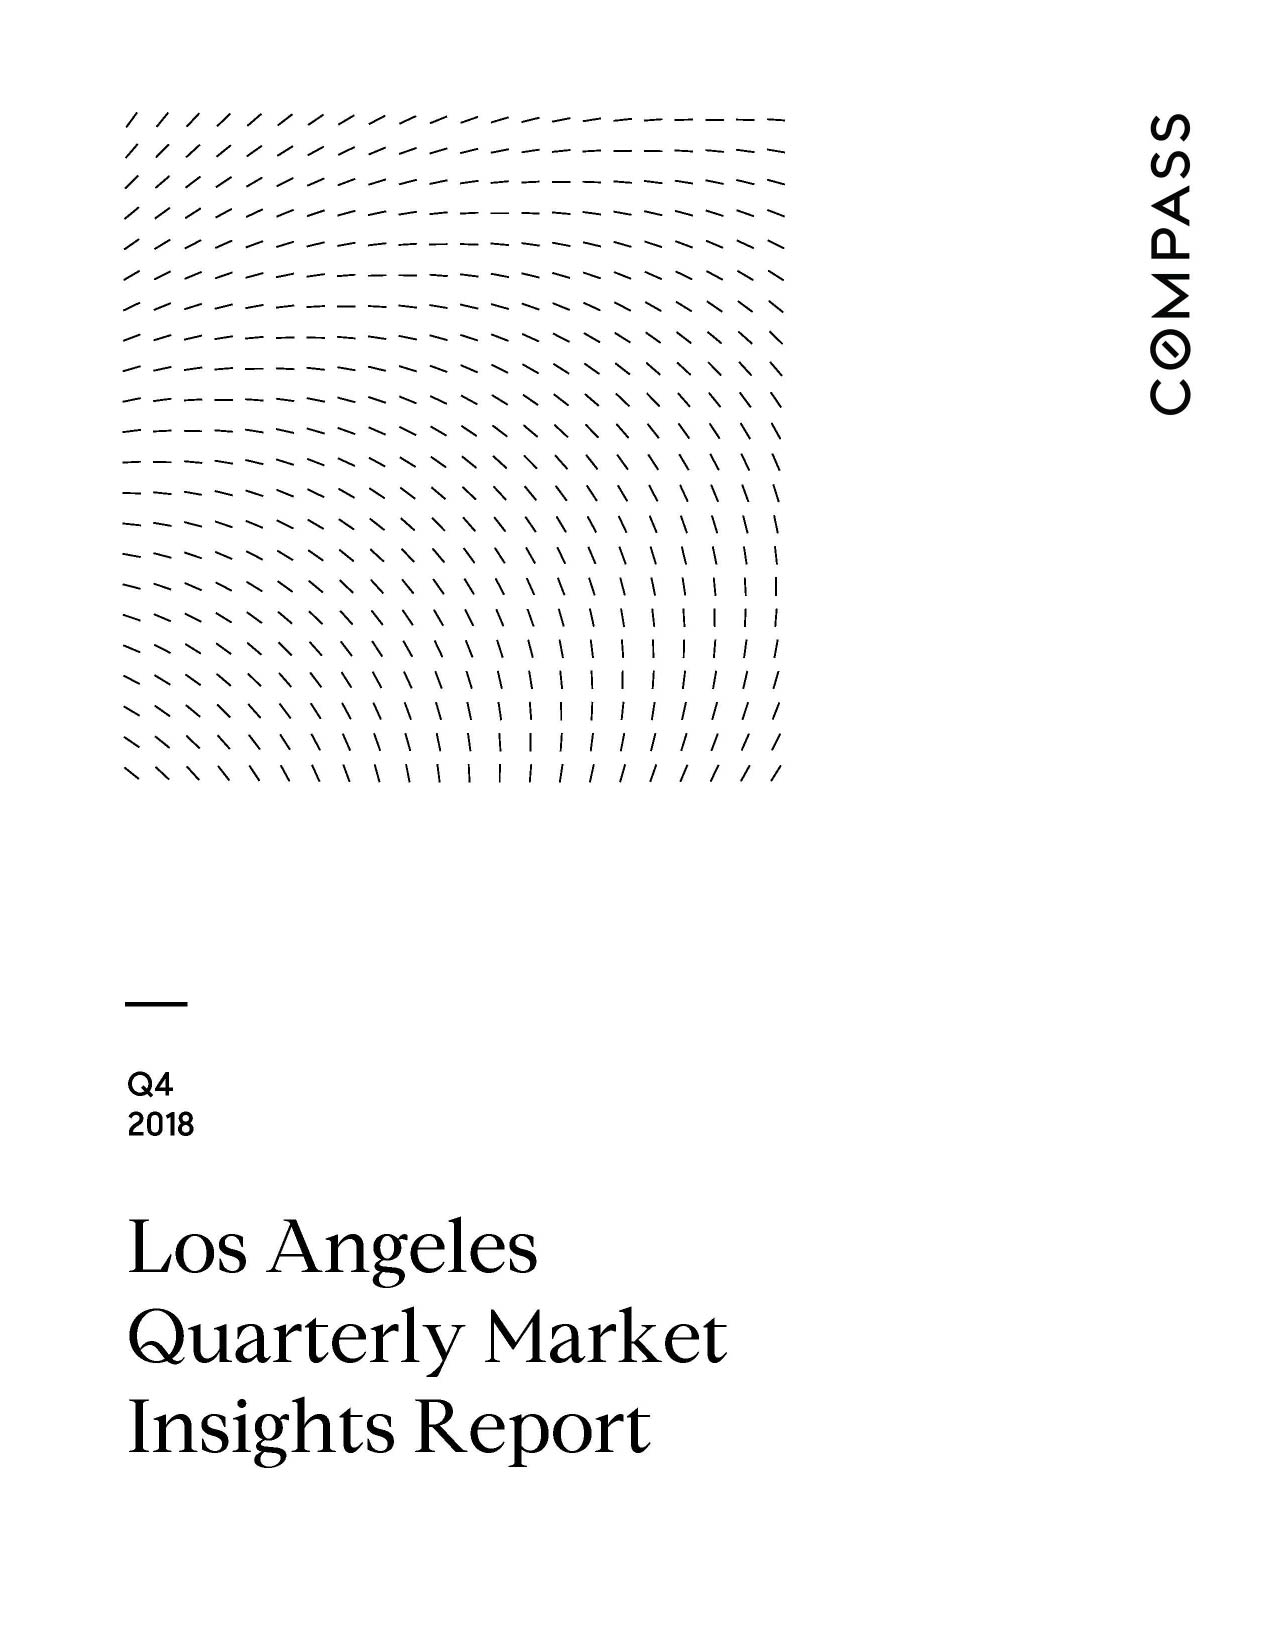 Los Angeles Quarterly Market Insights Report - Q4 2018